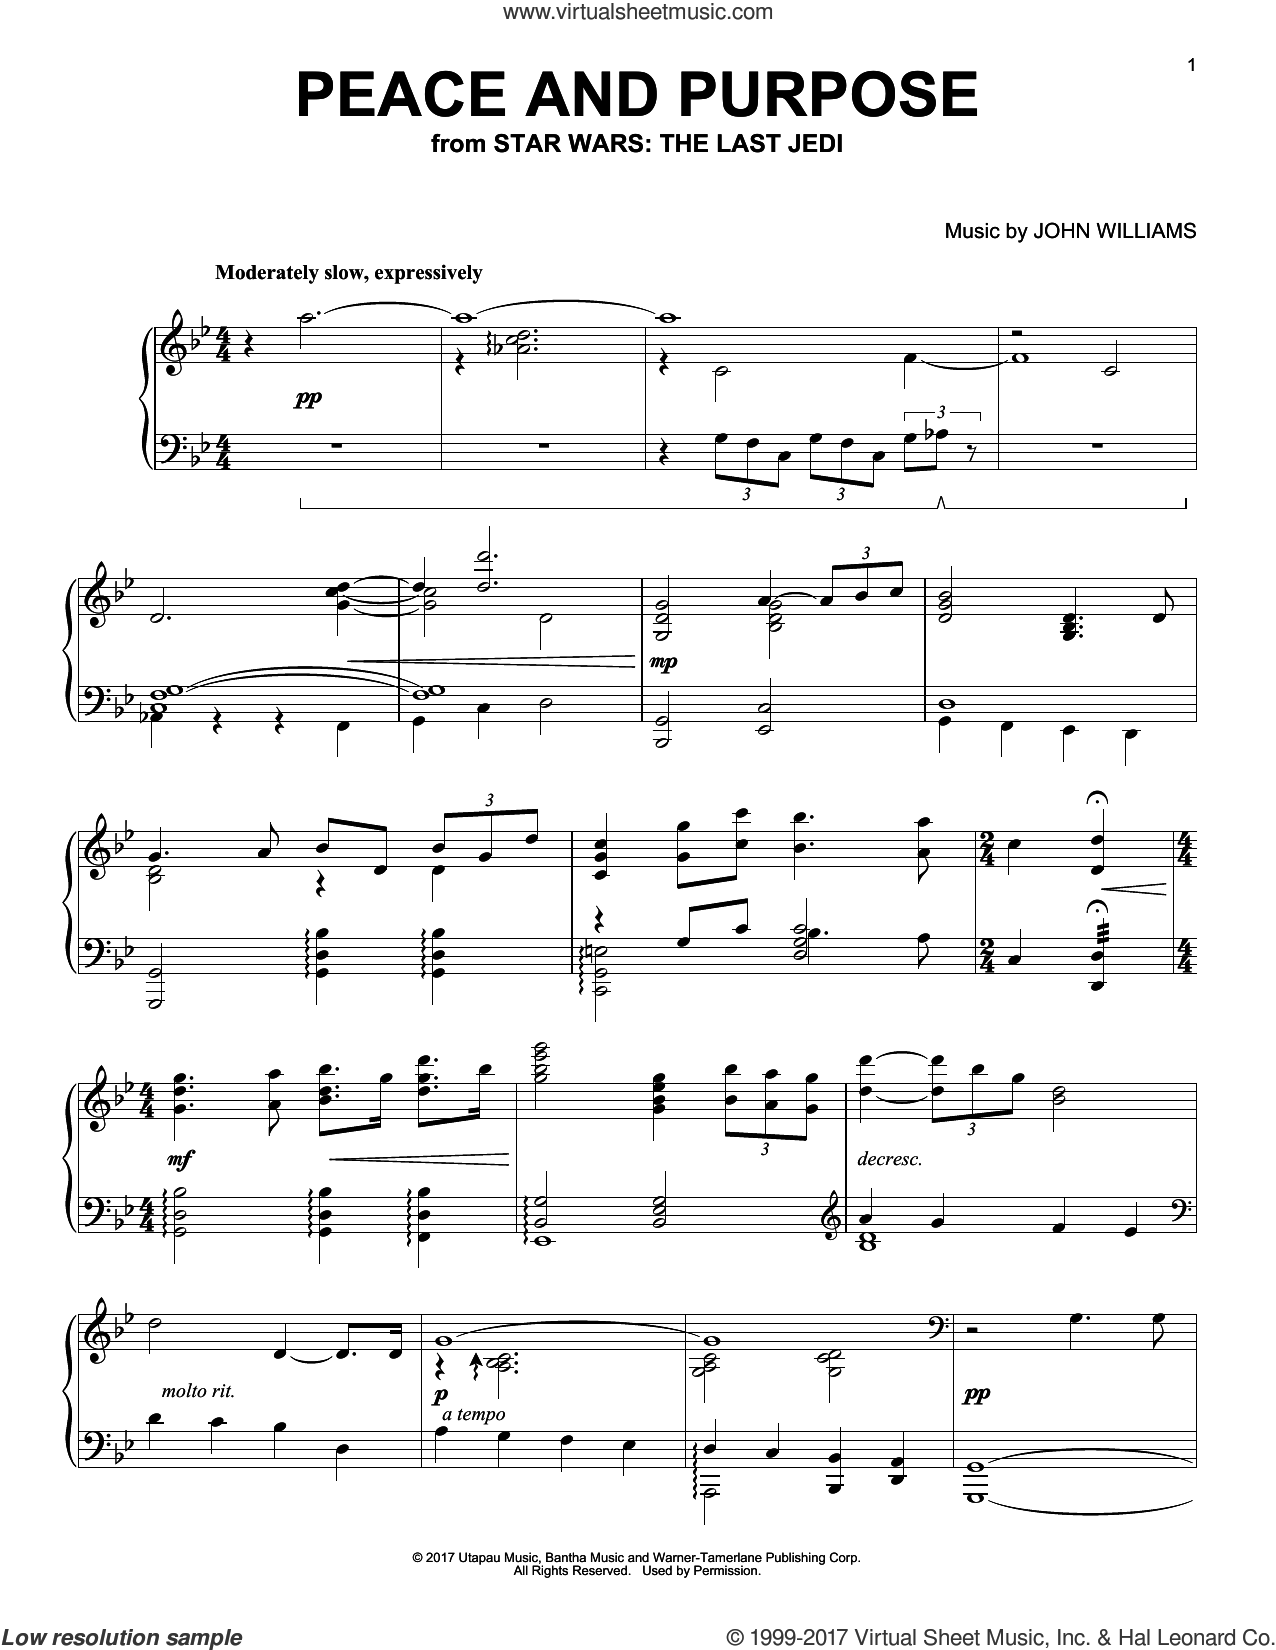 Peace And Purpose sheet music for piano solo by John Williams, intermediate skill level